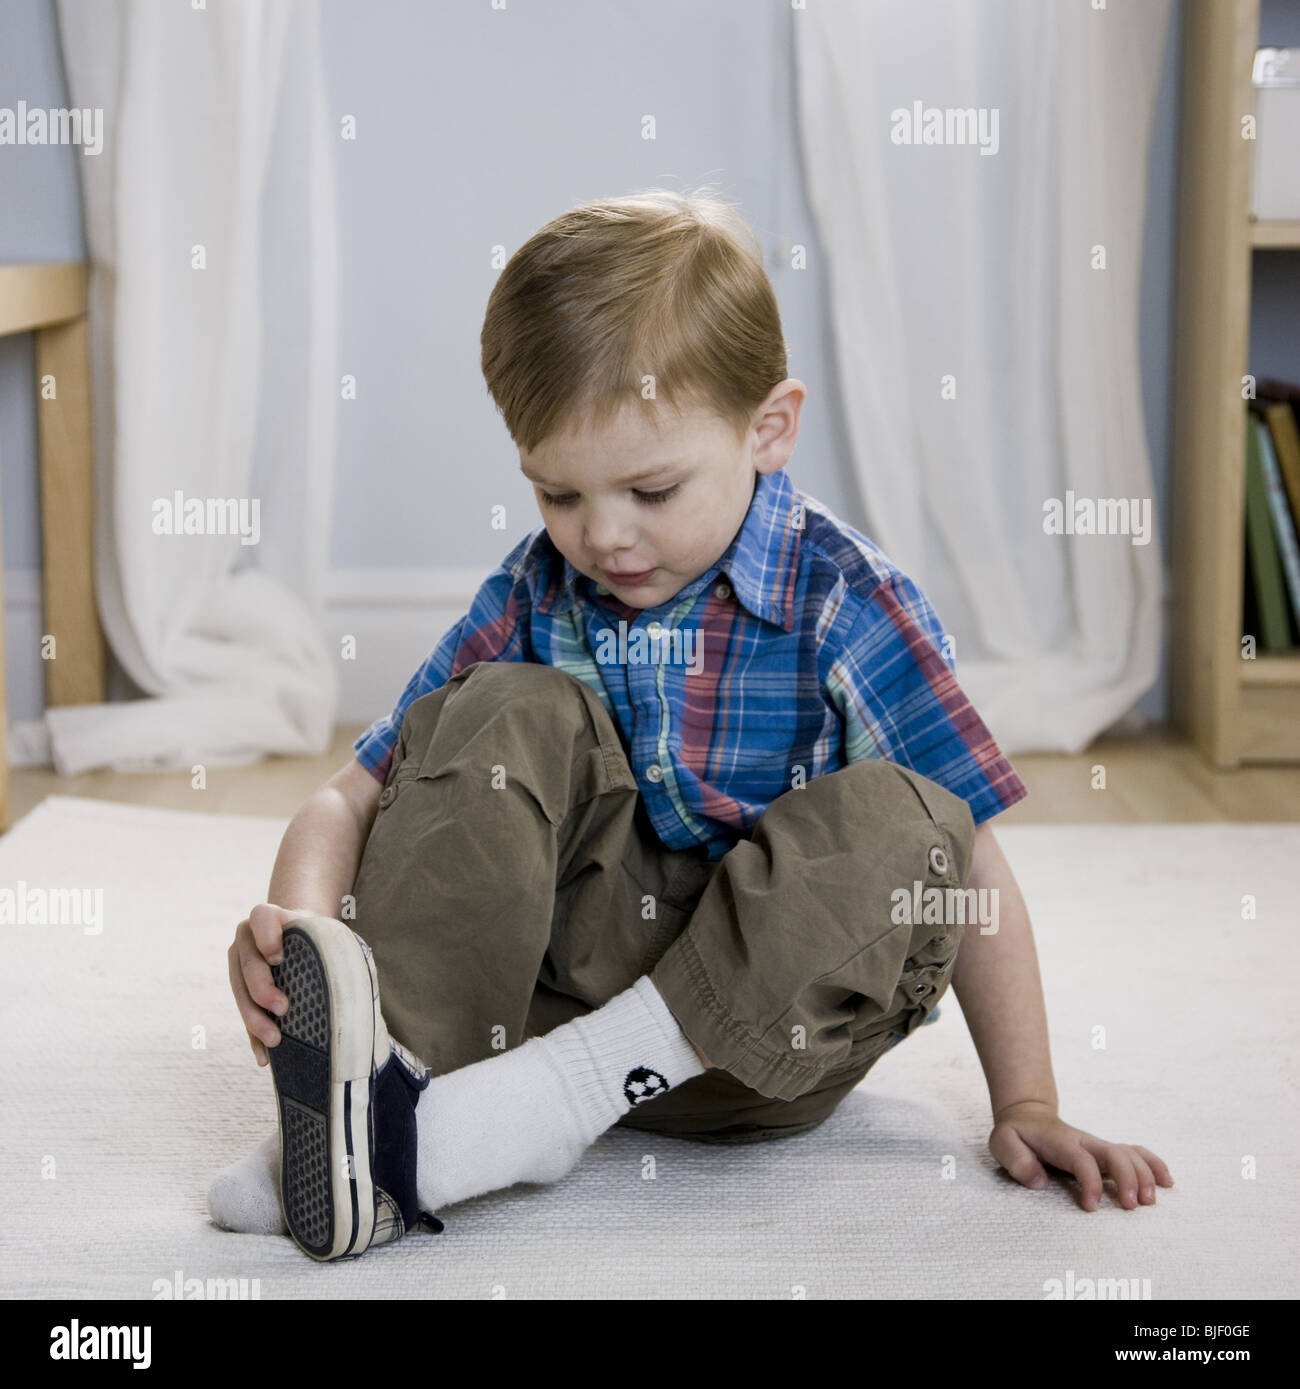 Little Boy Putting On Shoes Stock Photo Royalty Free Image 28603918 Alamy